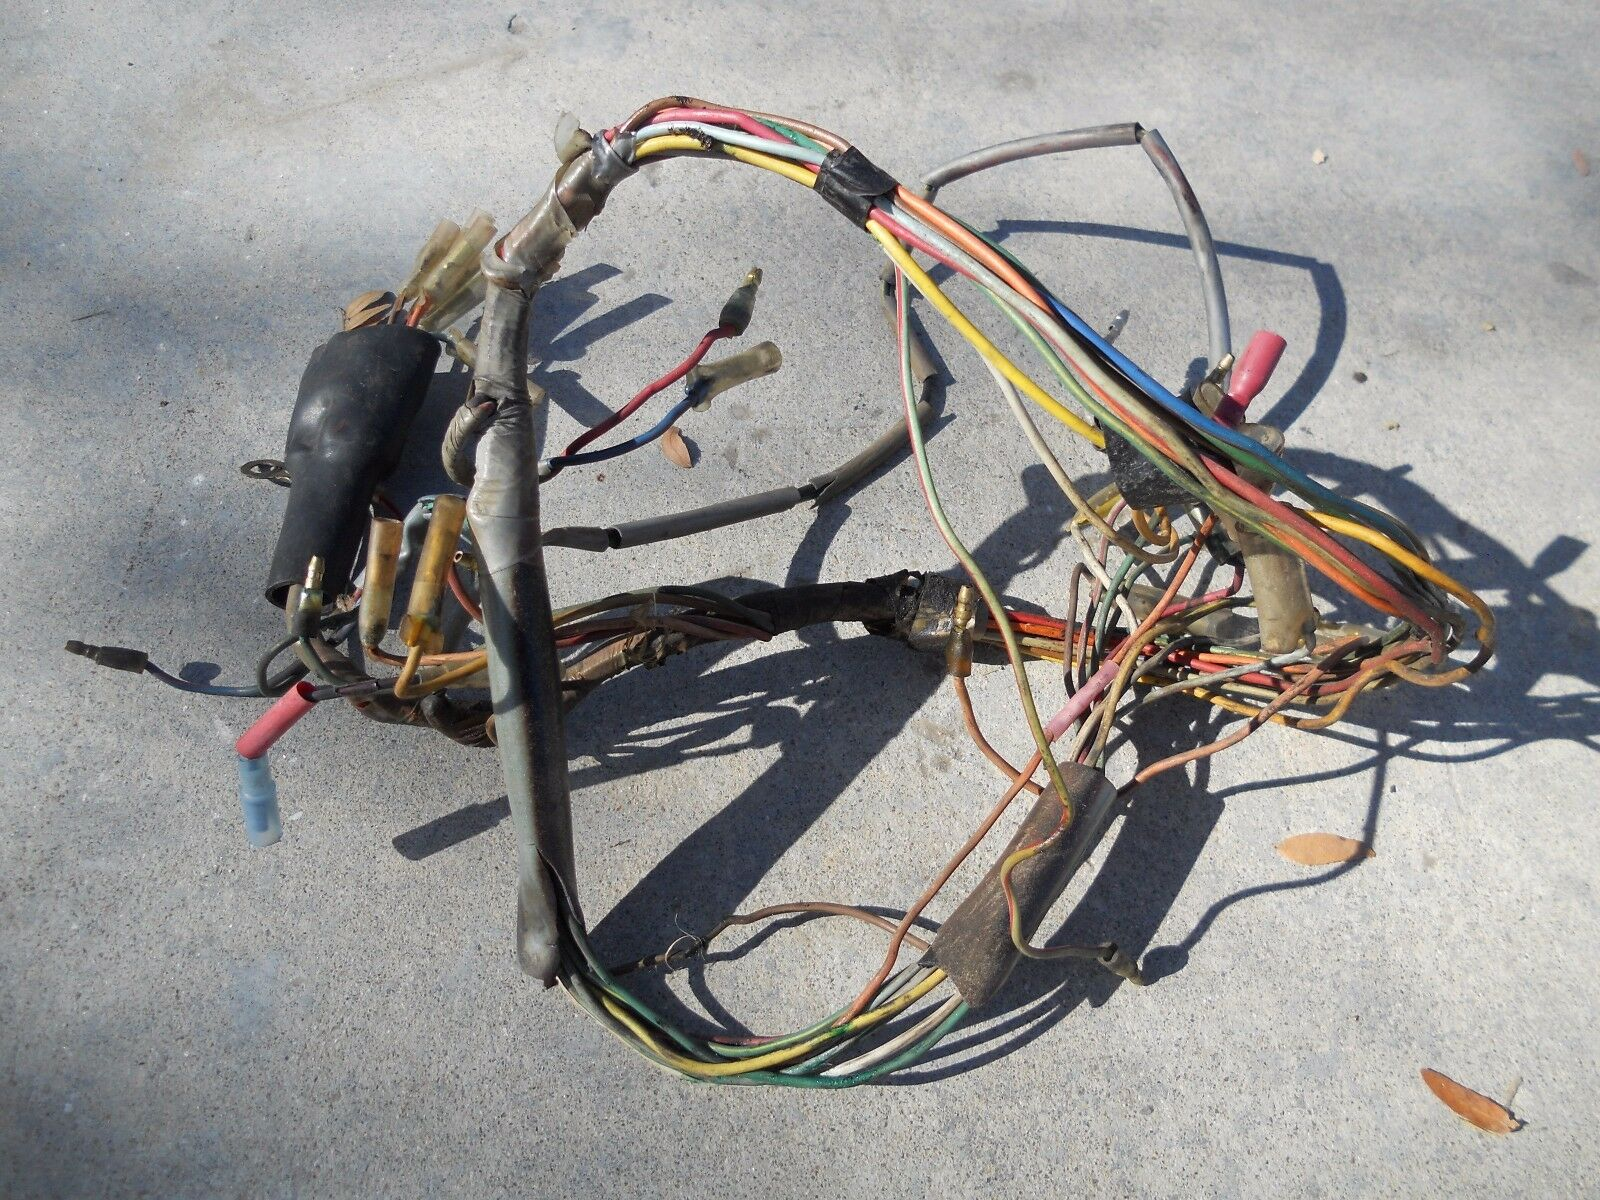 hight resolution of 1971 honda ct90 1004 wiring harness 1 of 2only 1 available